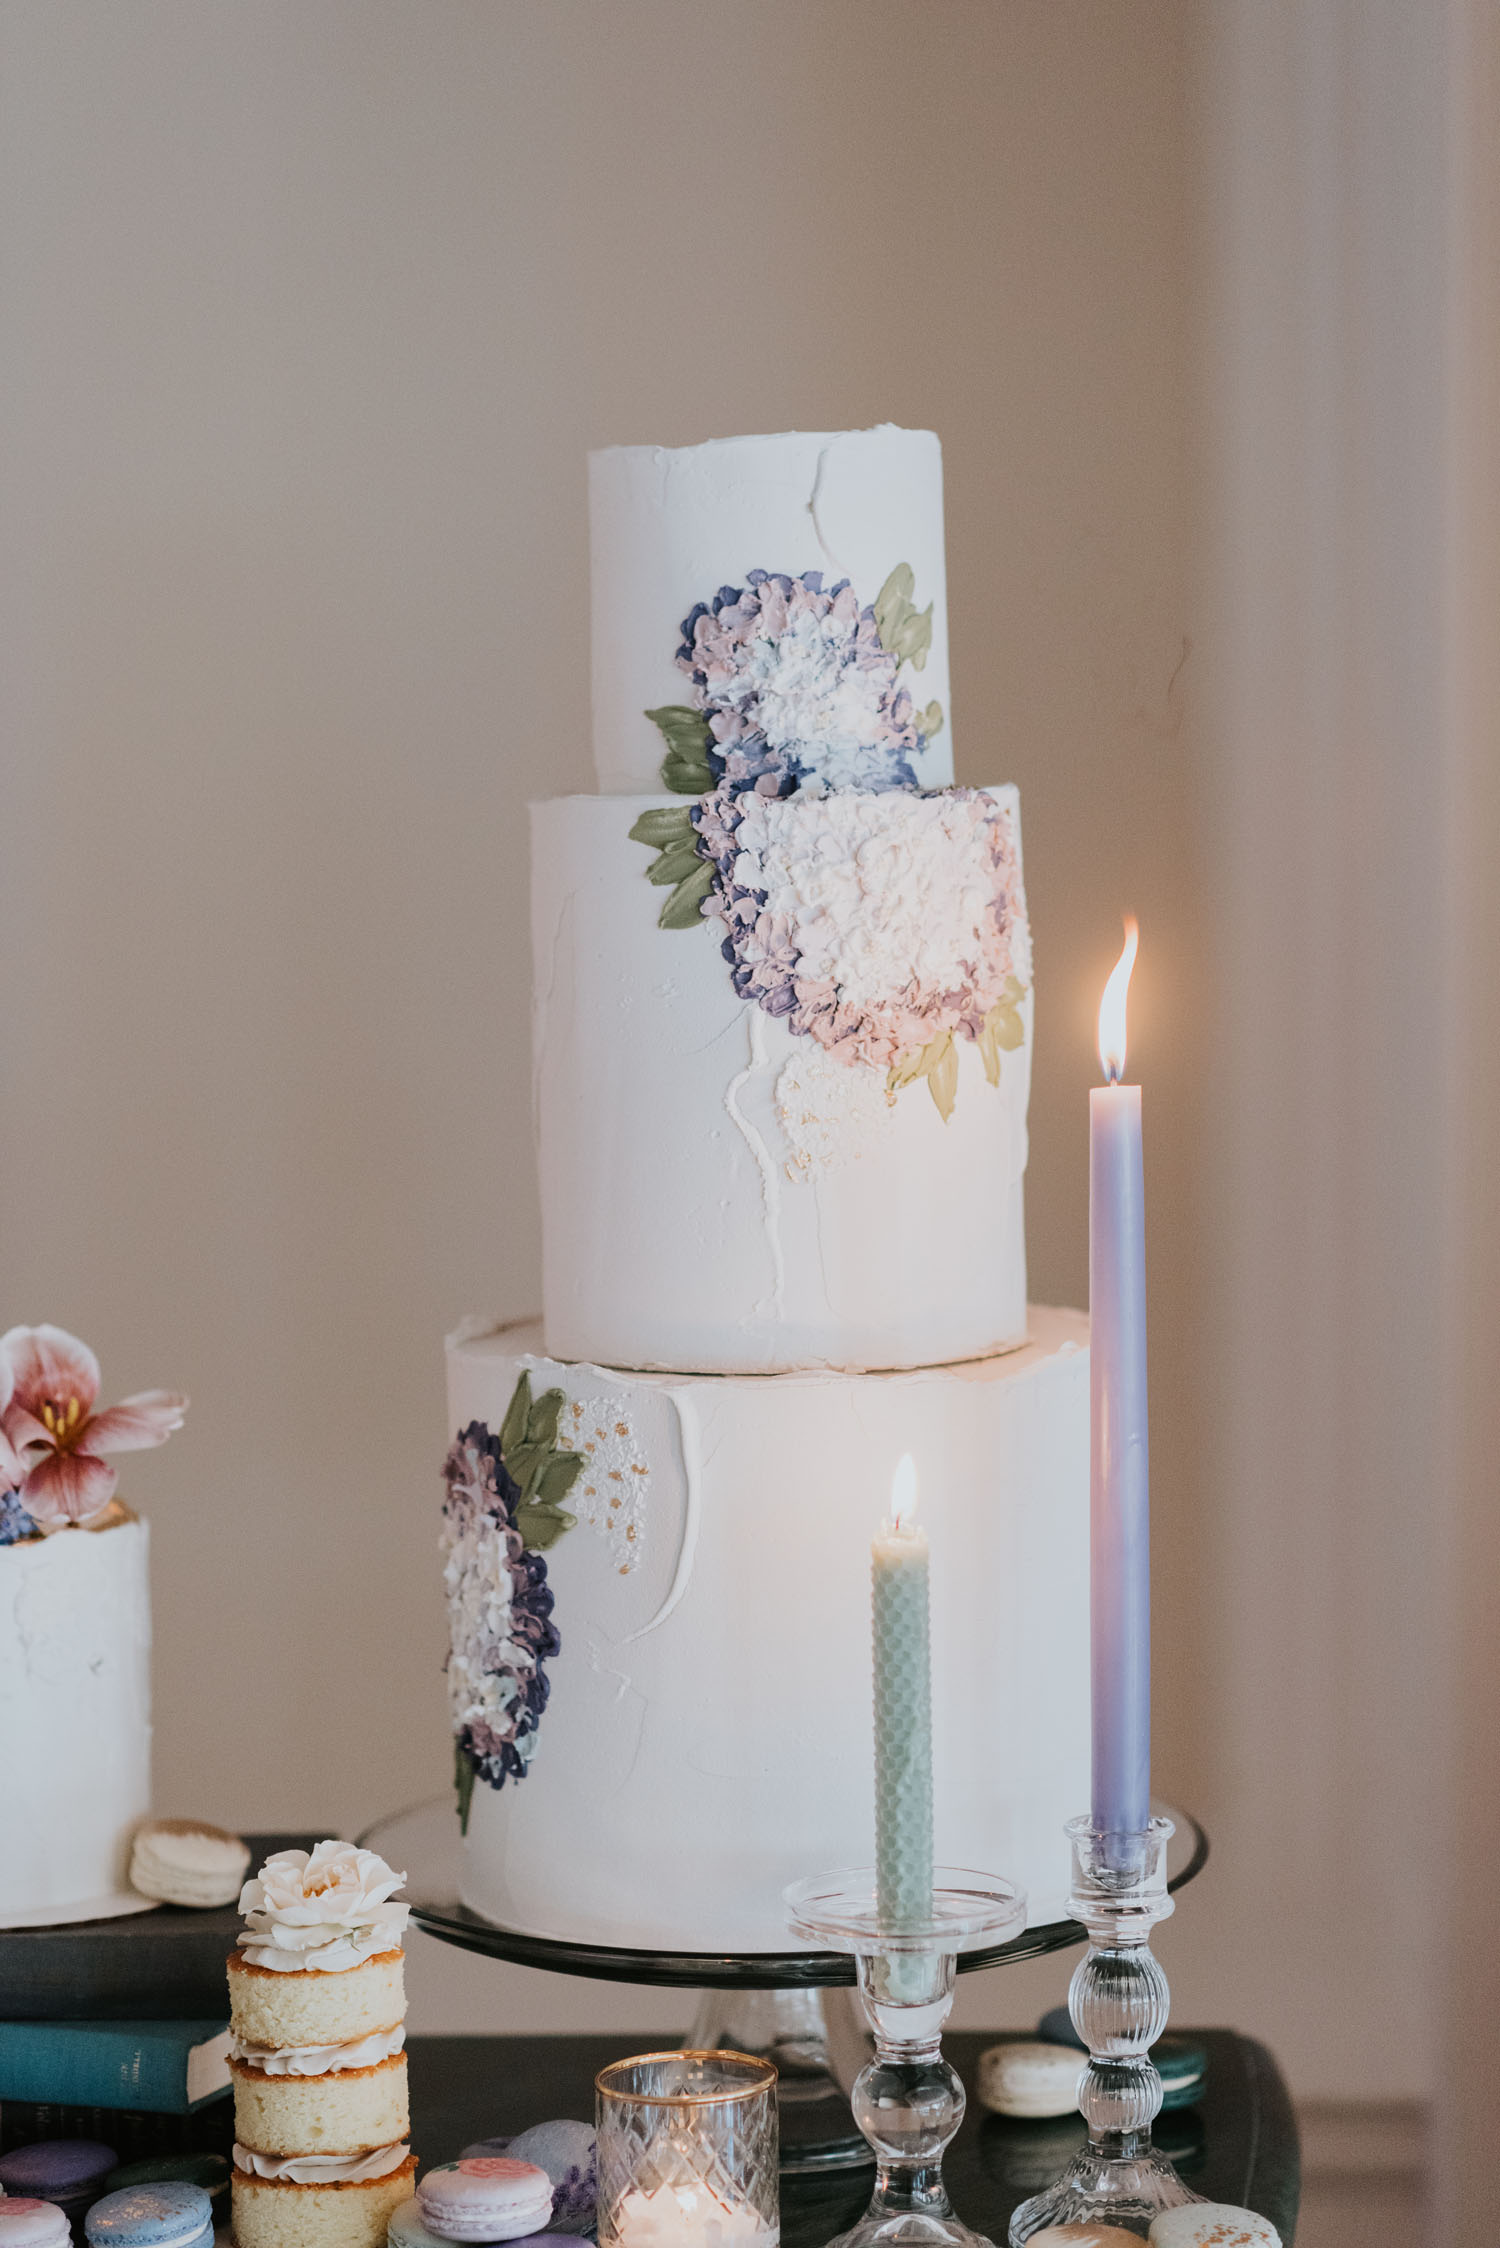 Flowers painted wedding cake